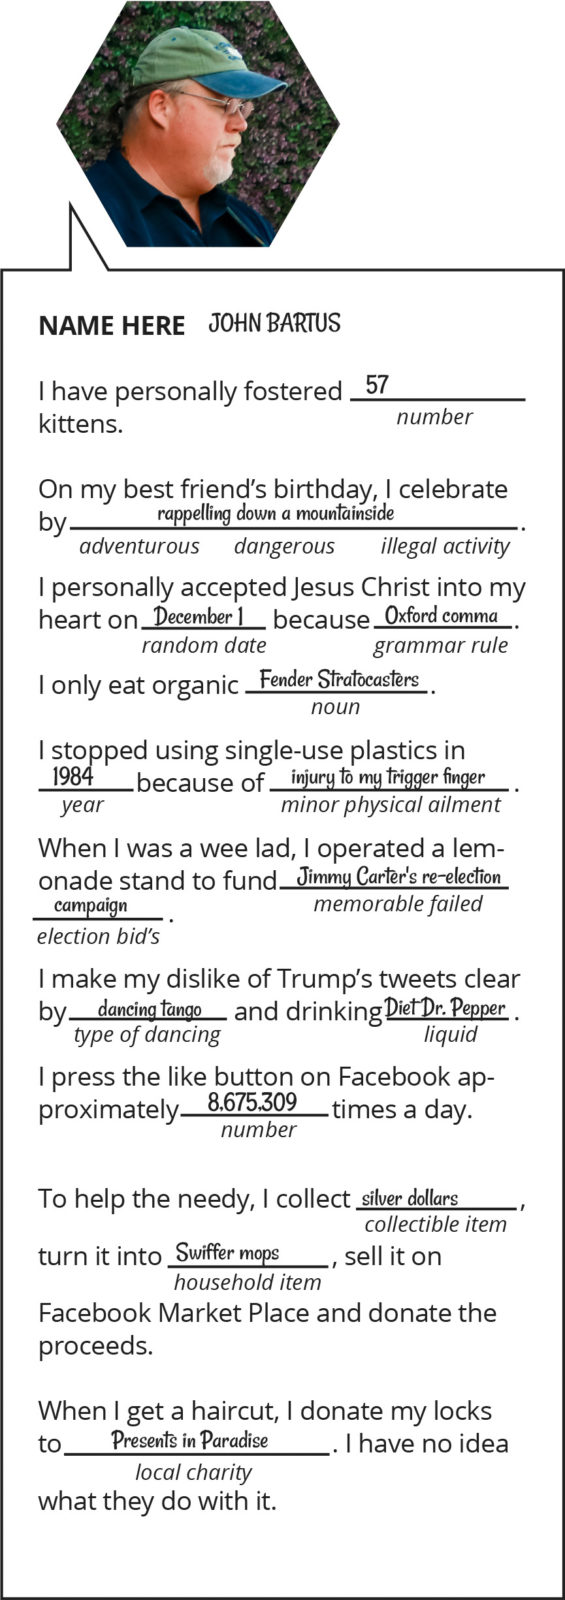 Local celebrities agree to play a round of Mad Libs